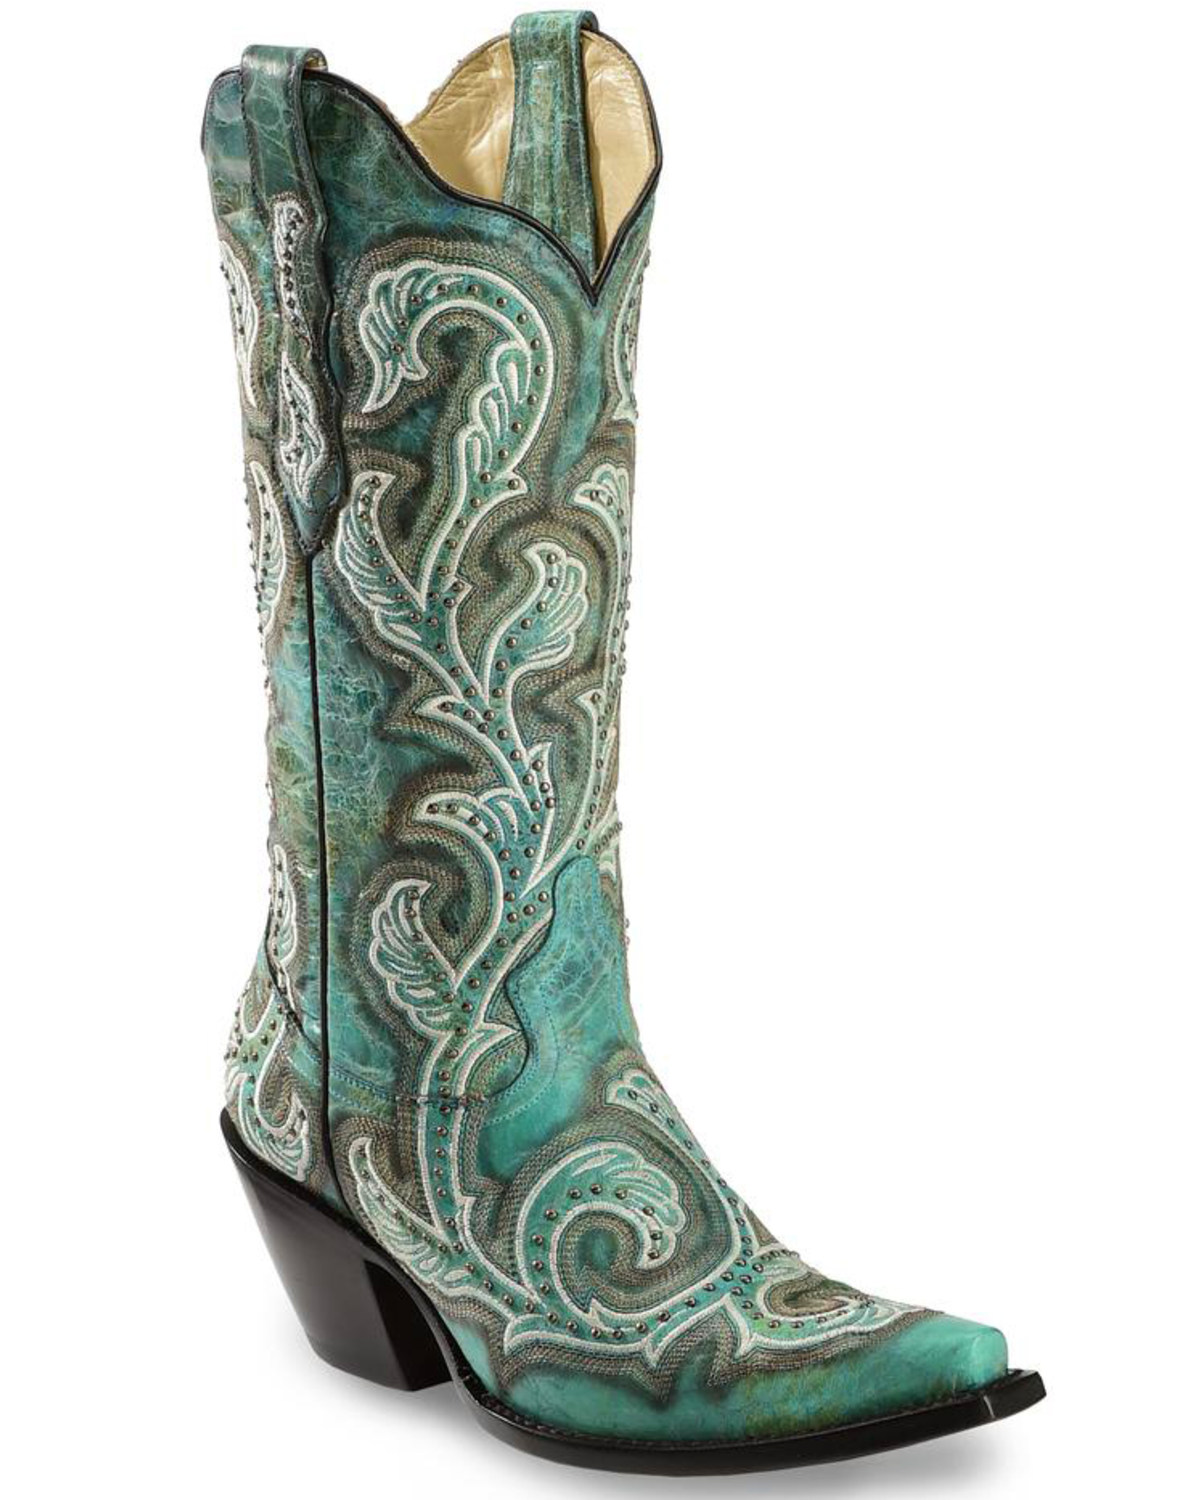 517ff5e4cc3 Corral Women s Stud   Embroidery Western Boots